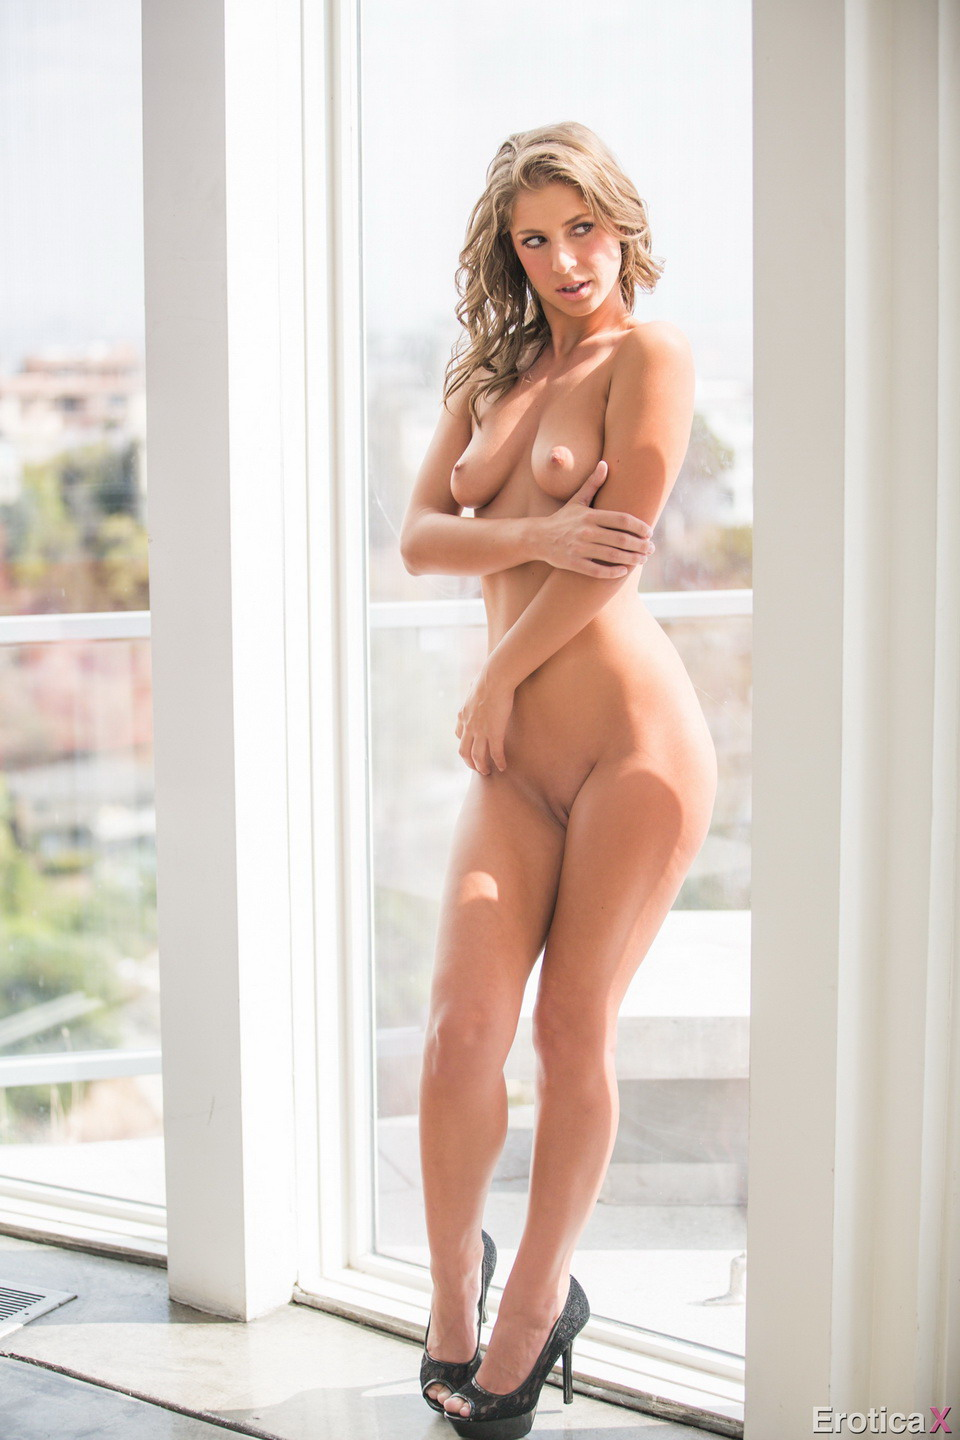 Nude glamour picture gallery by © 2014 Club Glamour: www.clubglamour.net/galleries/eroticax-presley-hart/eroticax...